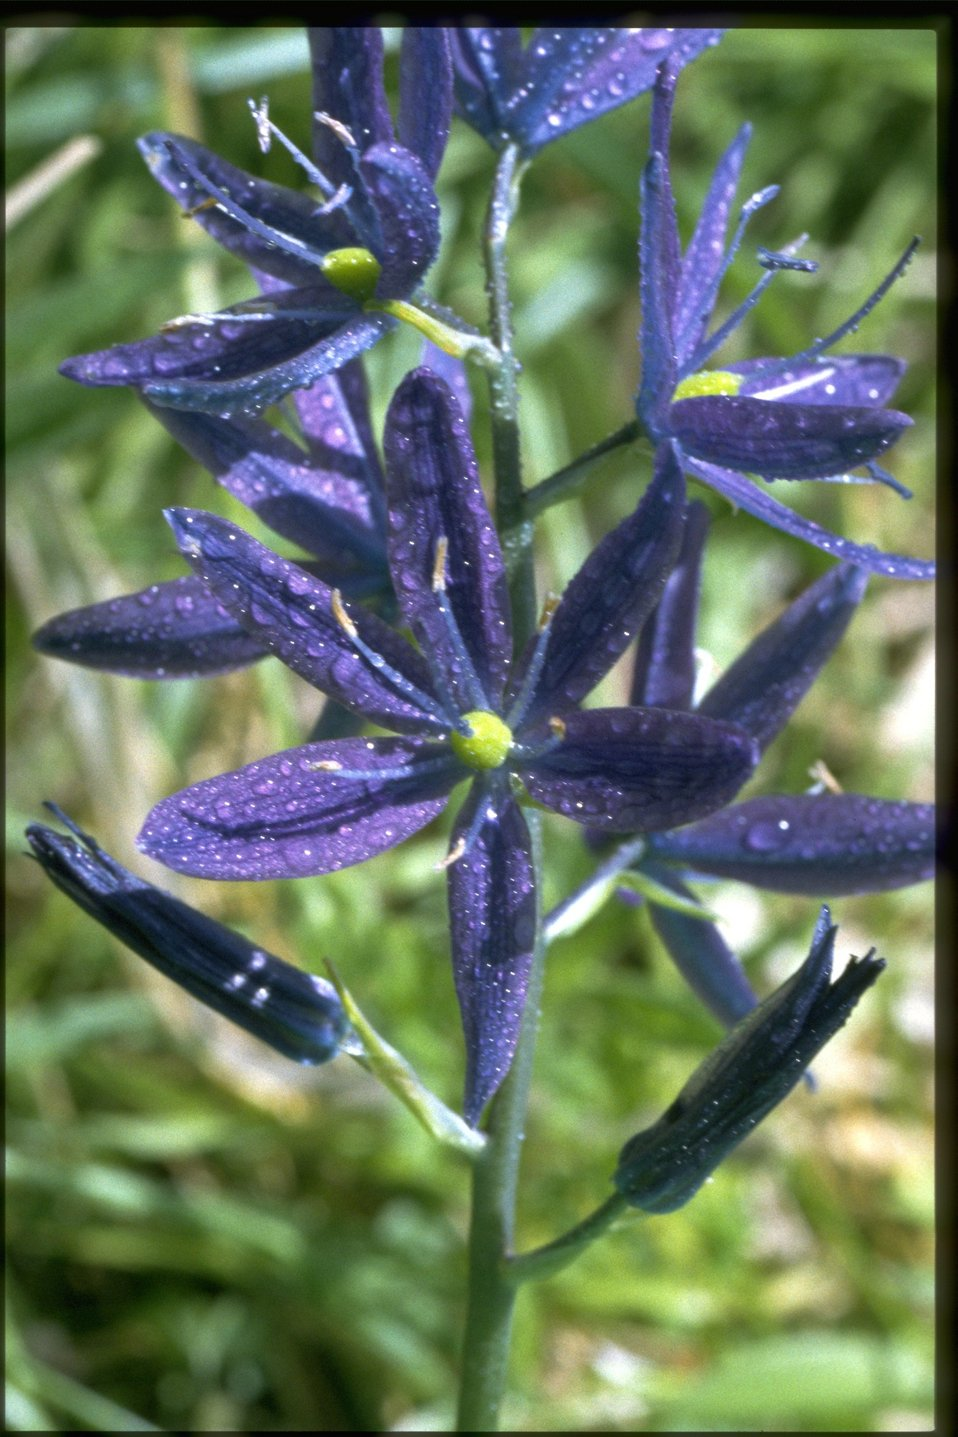 Medium shot of Camassia quamash.